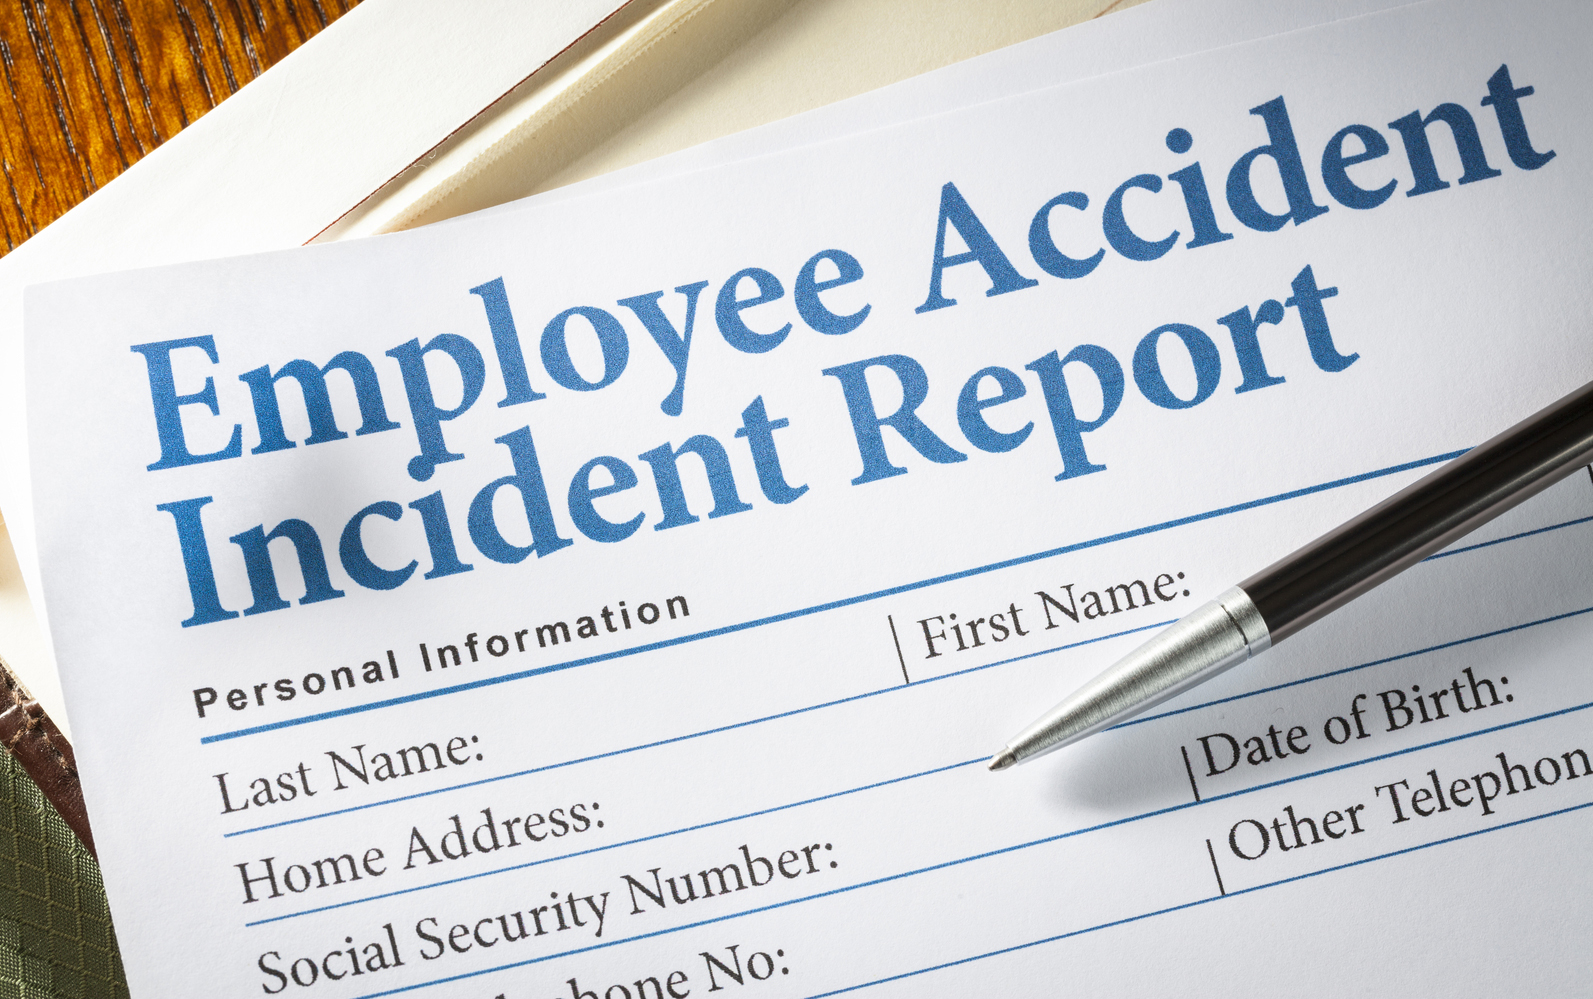 Employee-incident-report